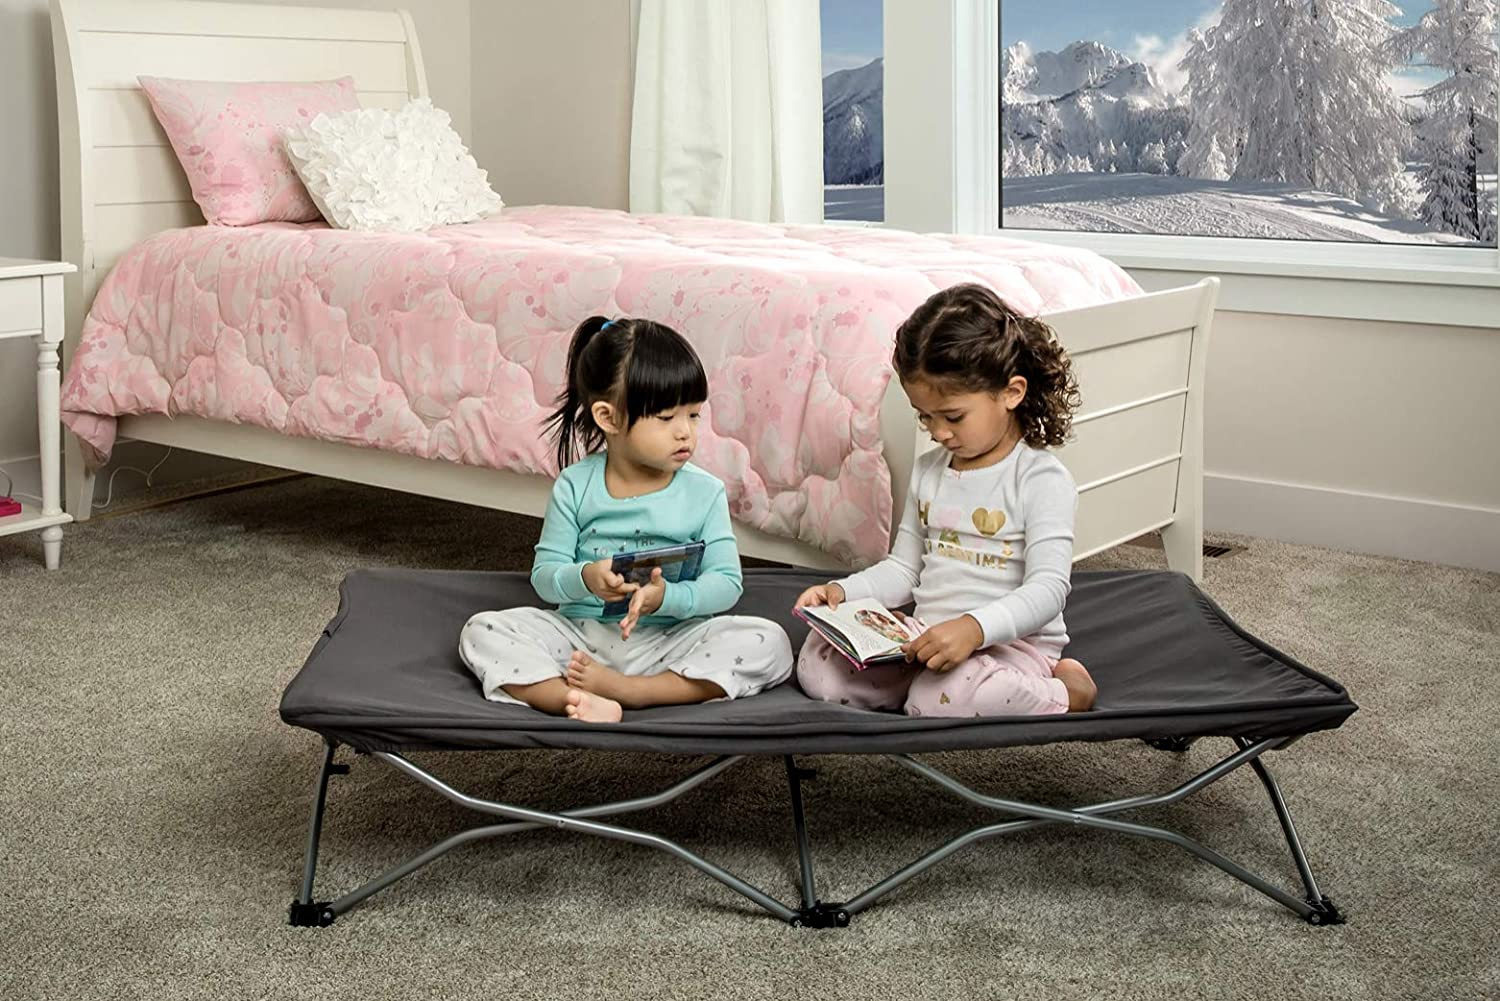 Regalo My Cot Portable Travel Bed, Grey, Includes Fitted Sheet and Travel Case 5009 DS